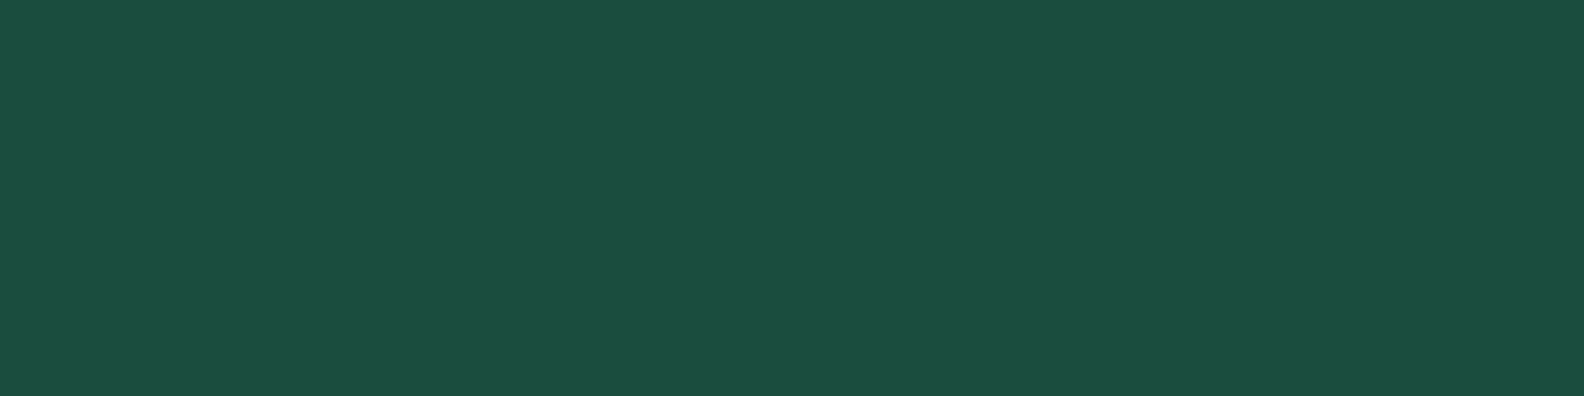 1584x396 Brunswick Green Solid Color Background